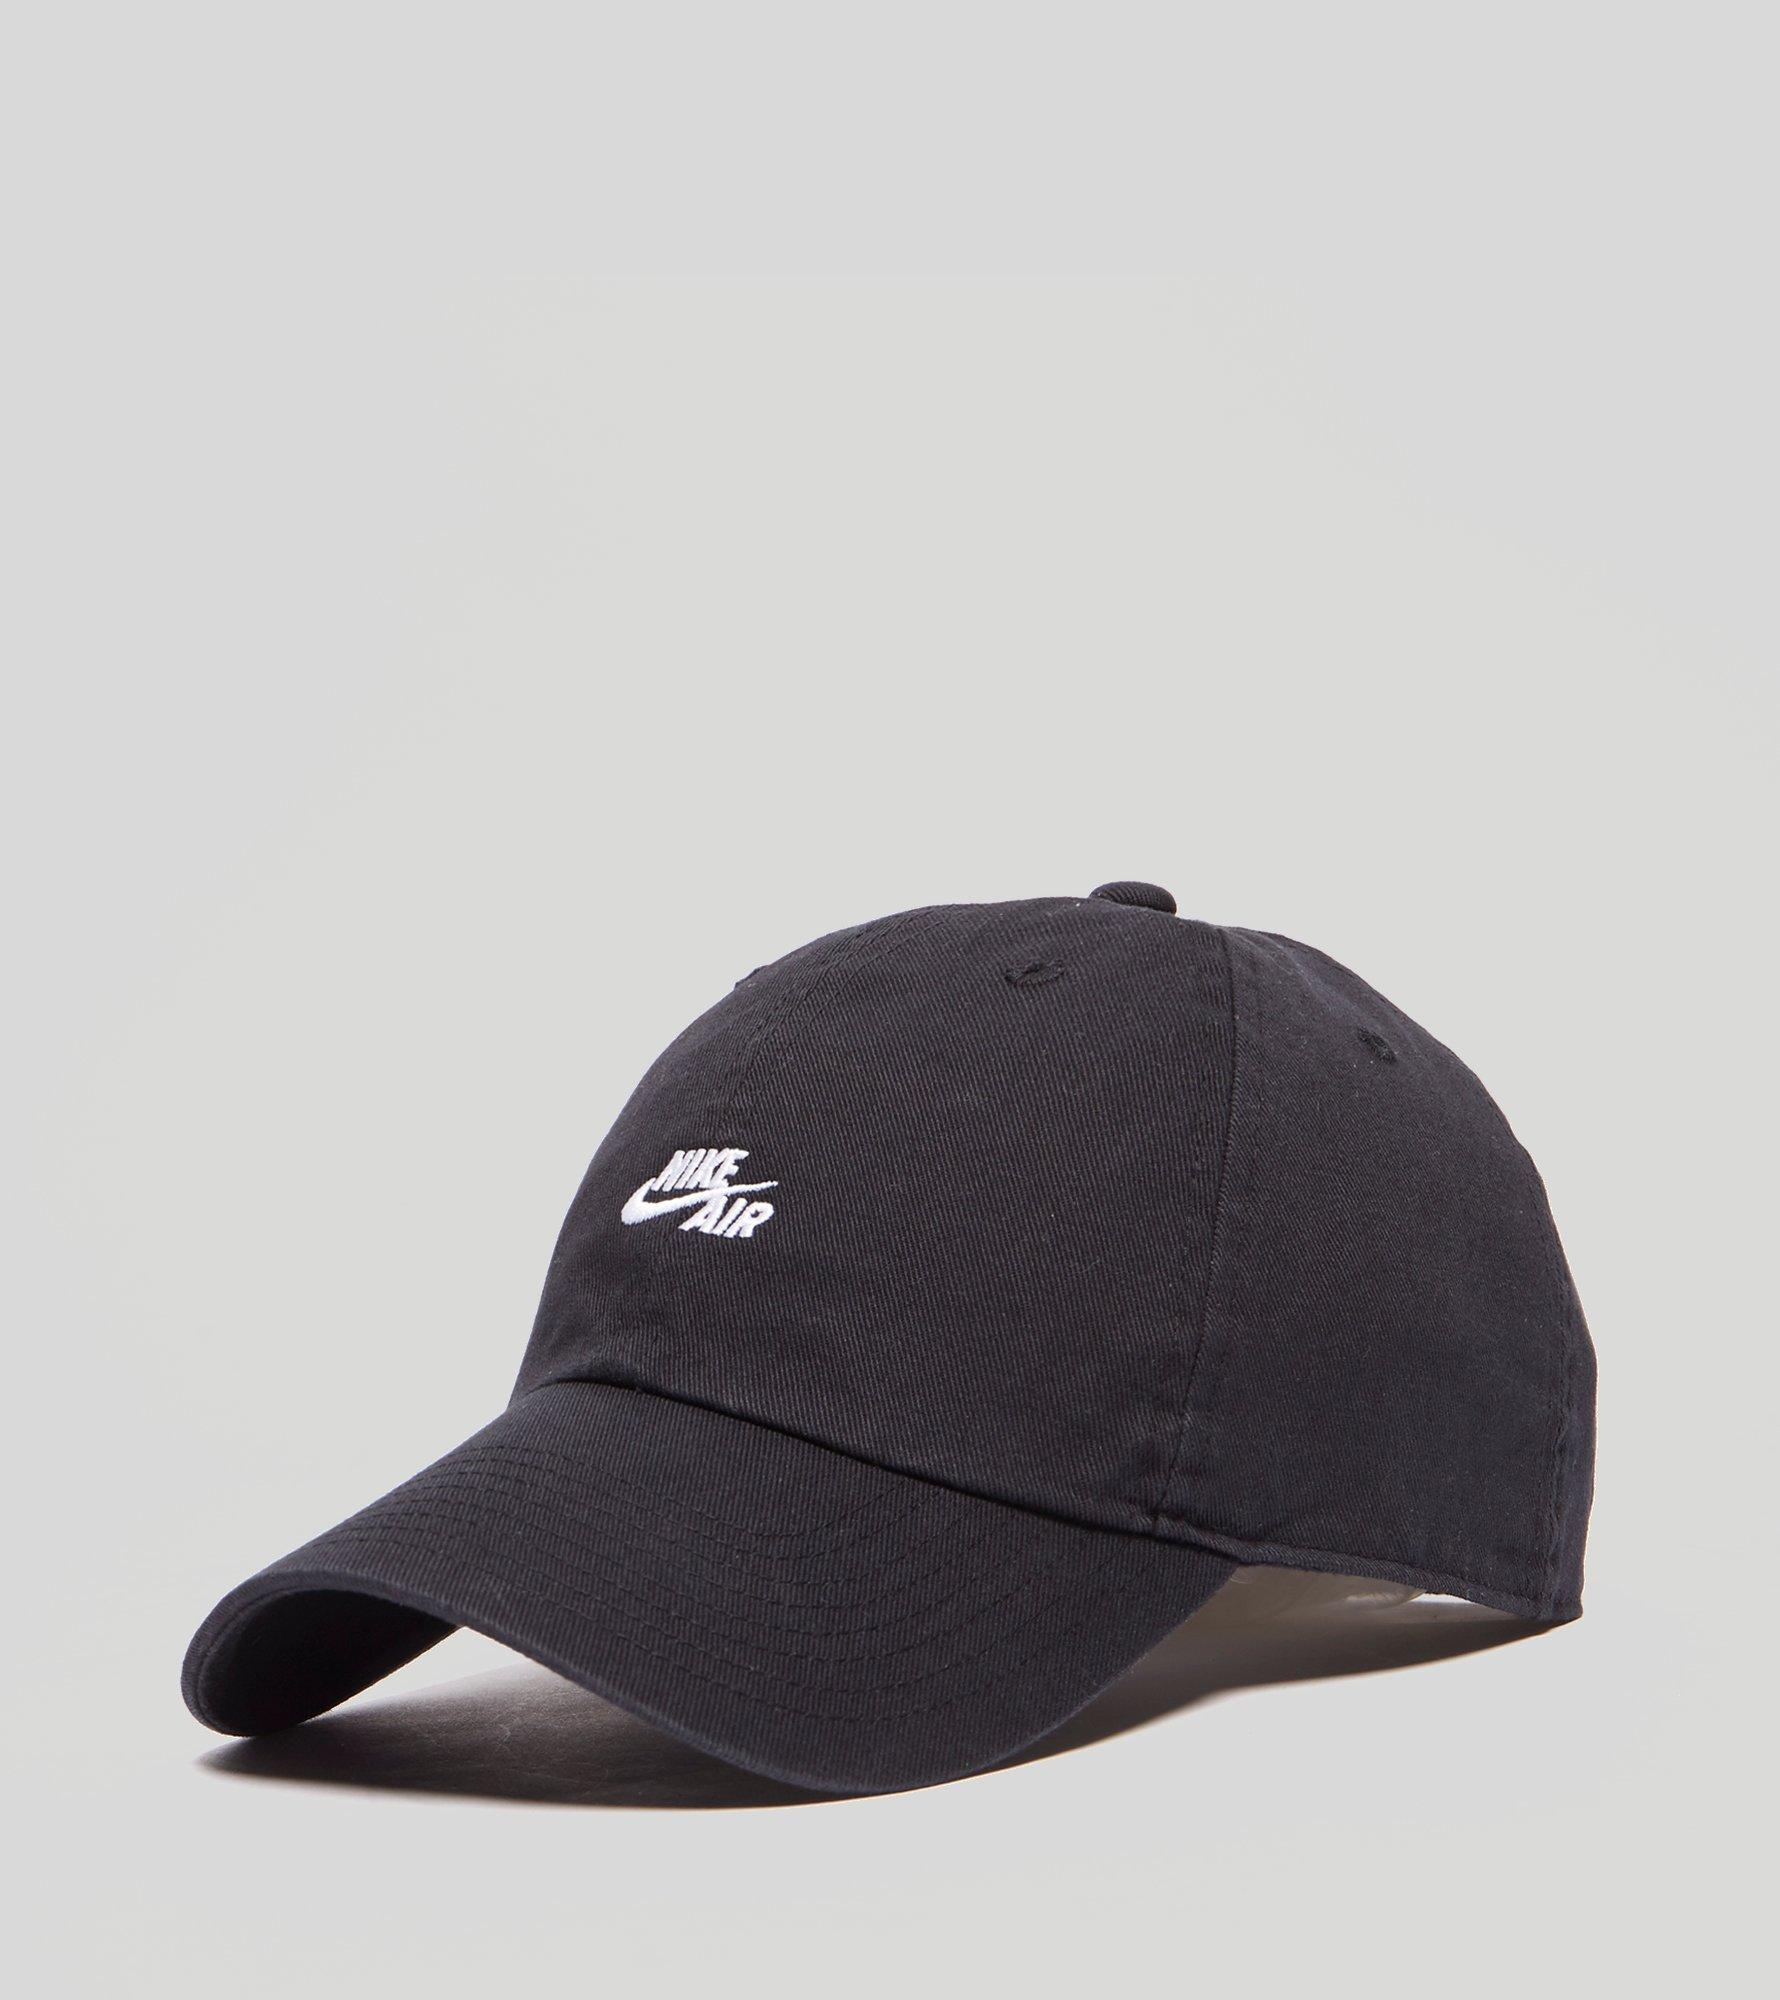 uk availability 29f74 f8c12 Nike Heritage Air 86 Cap in Black for Men - Lyst